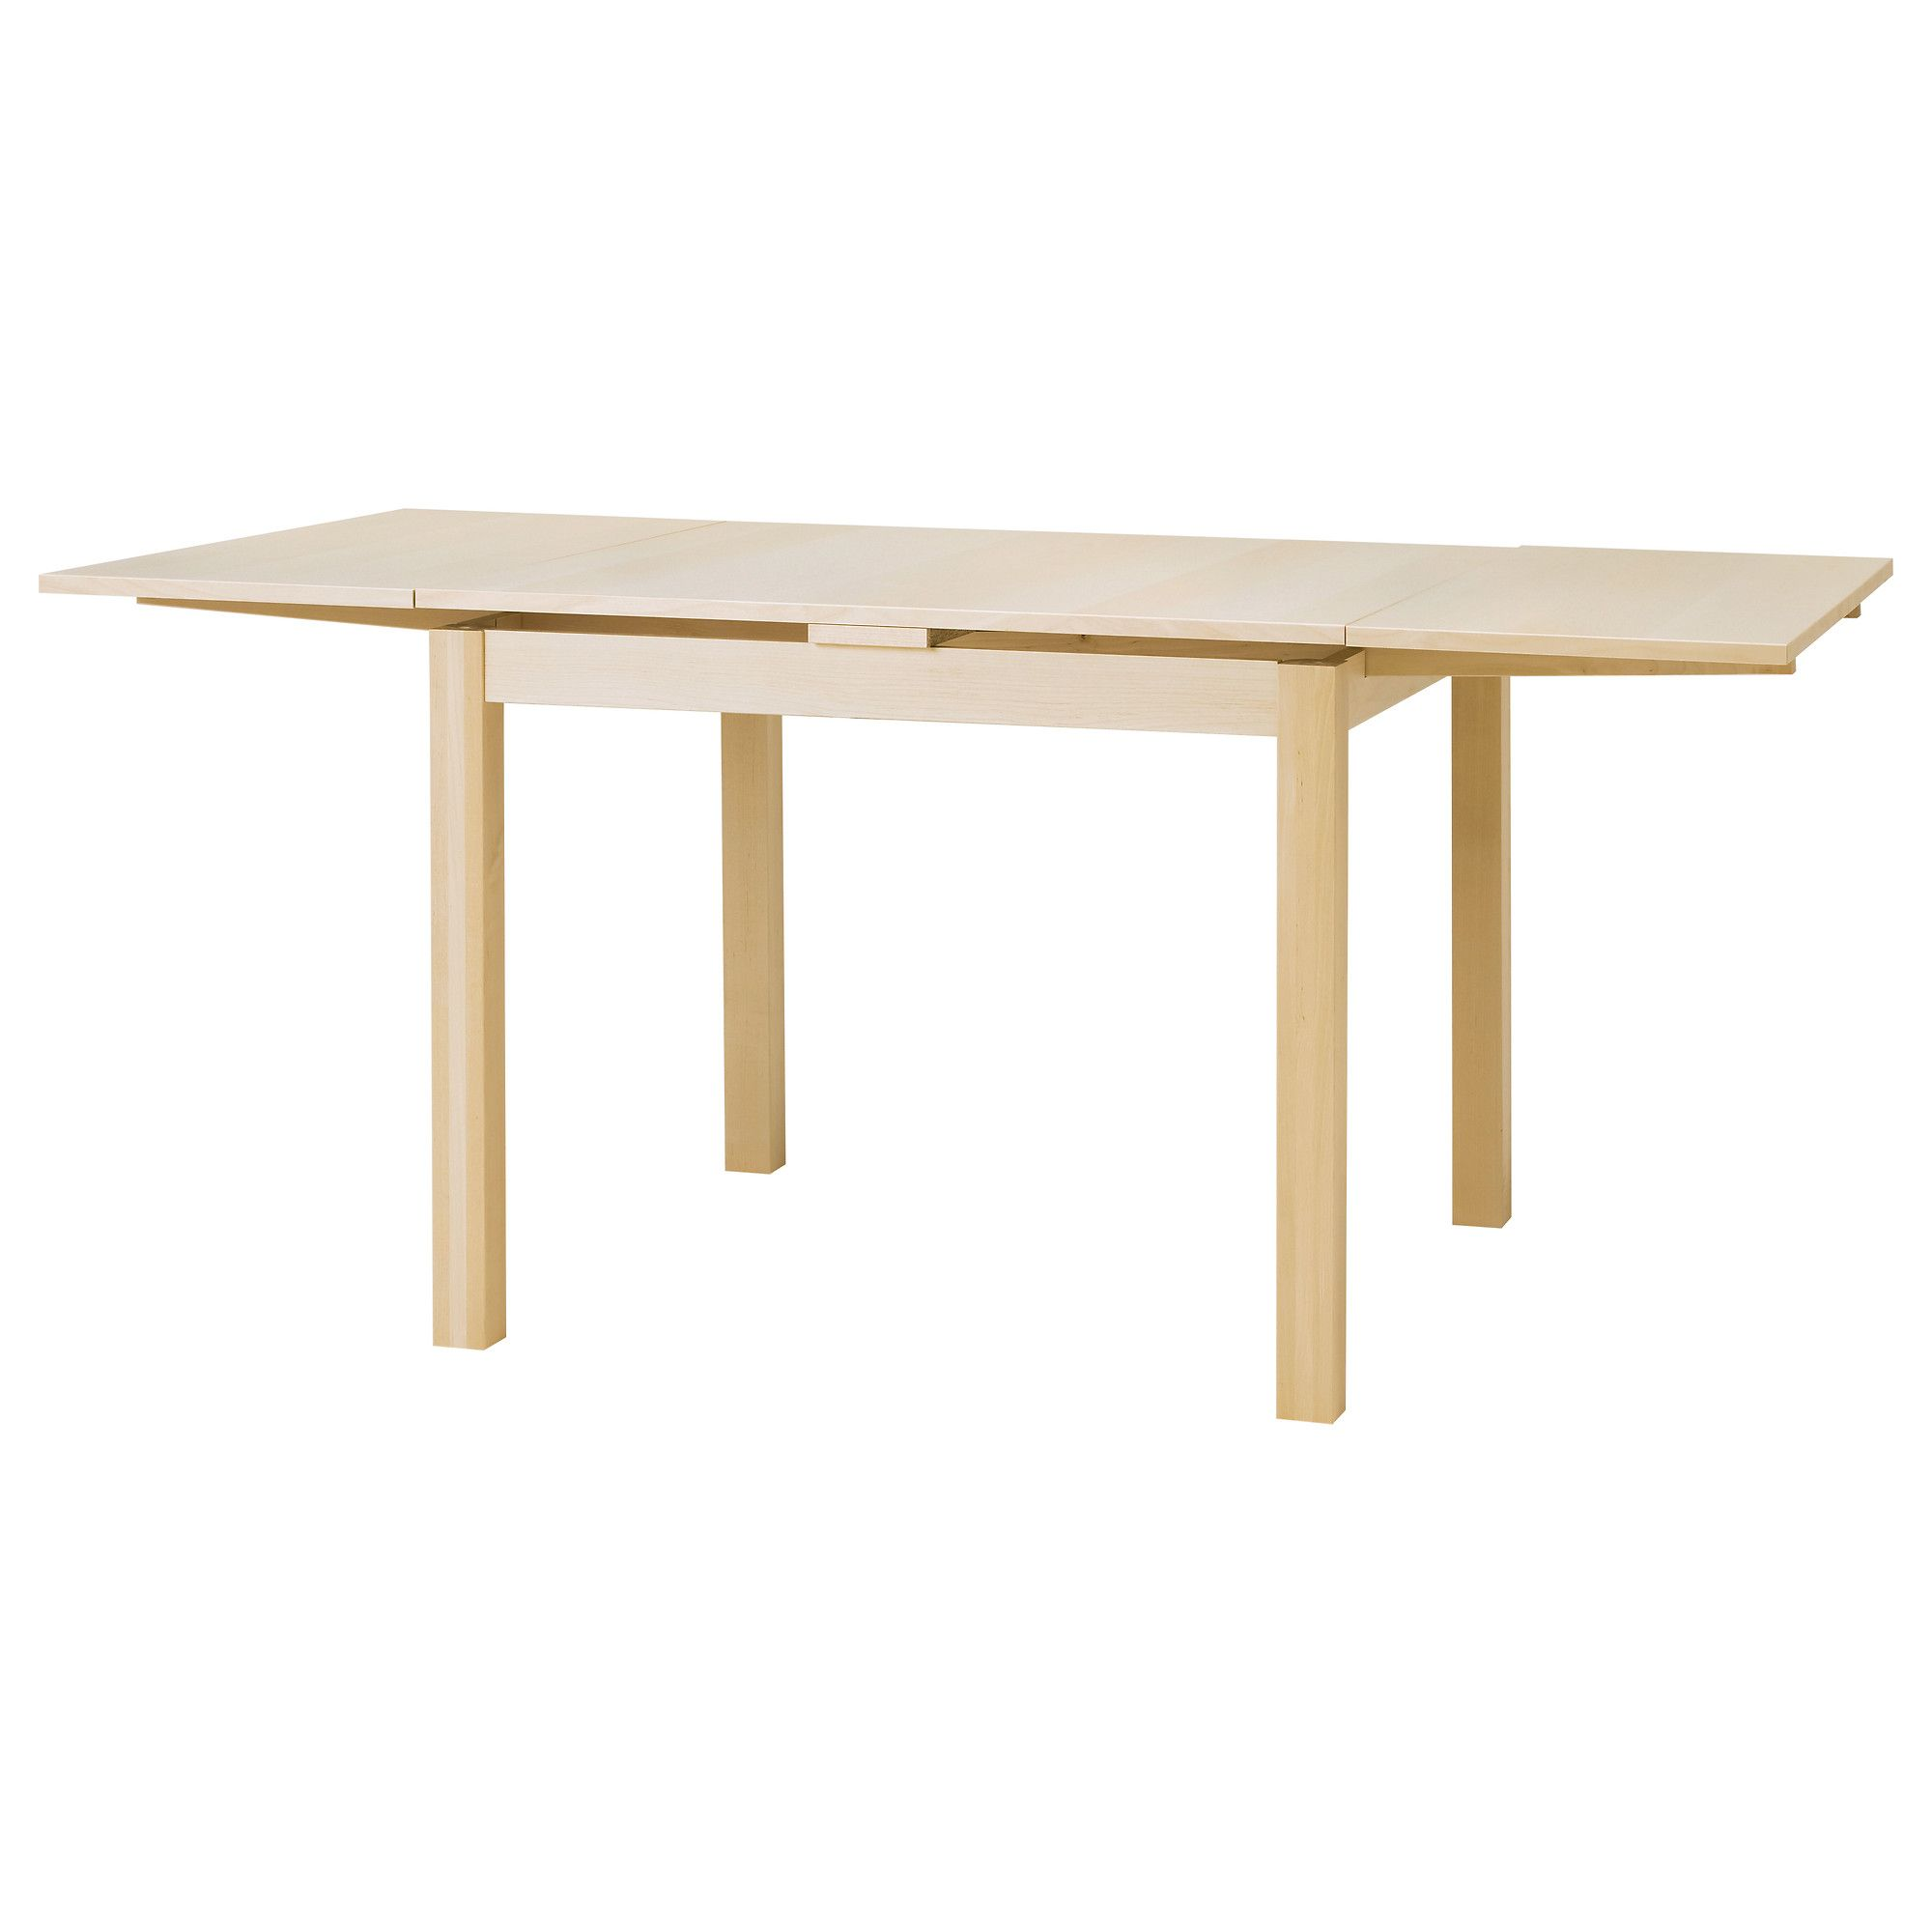 Bjursta Extendable Table Ikea As Wells As Bjursta Extendable Table